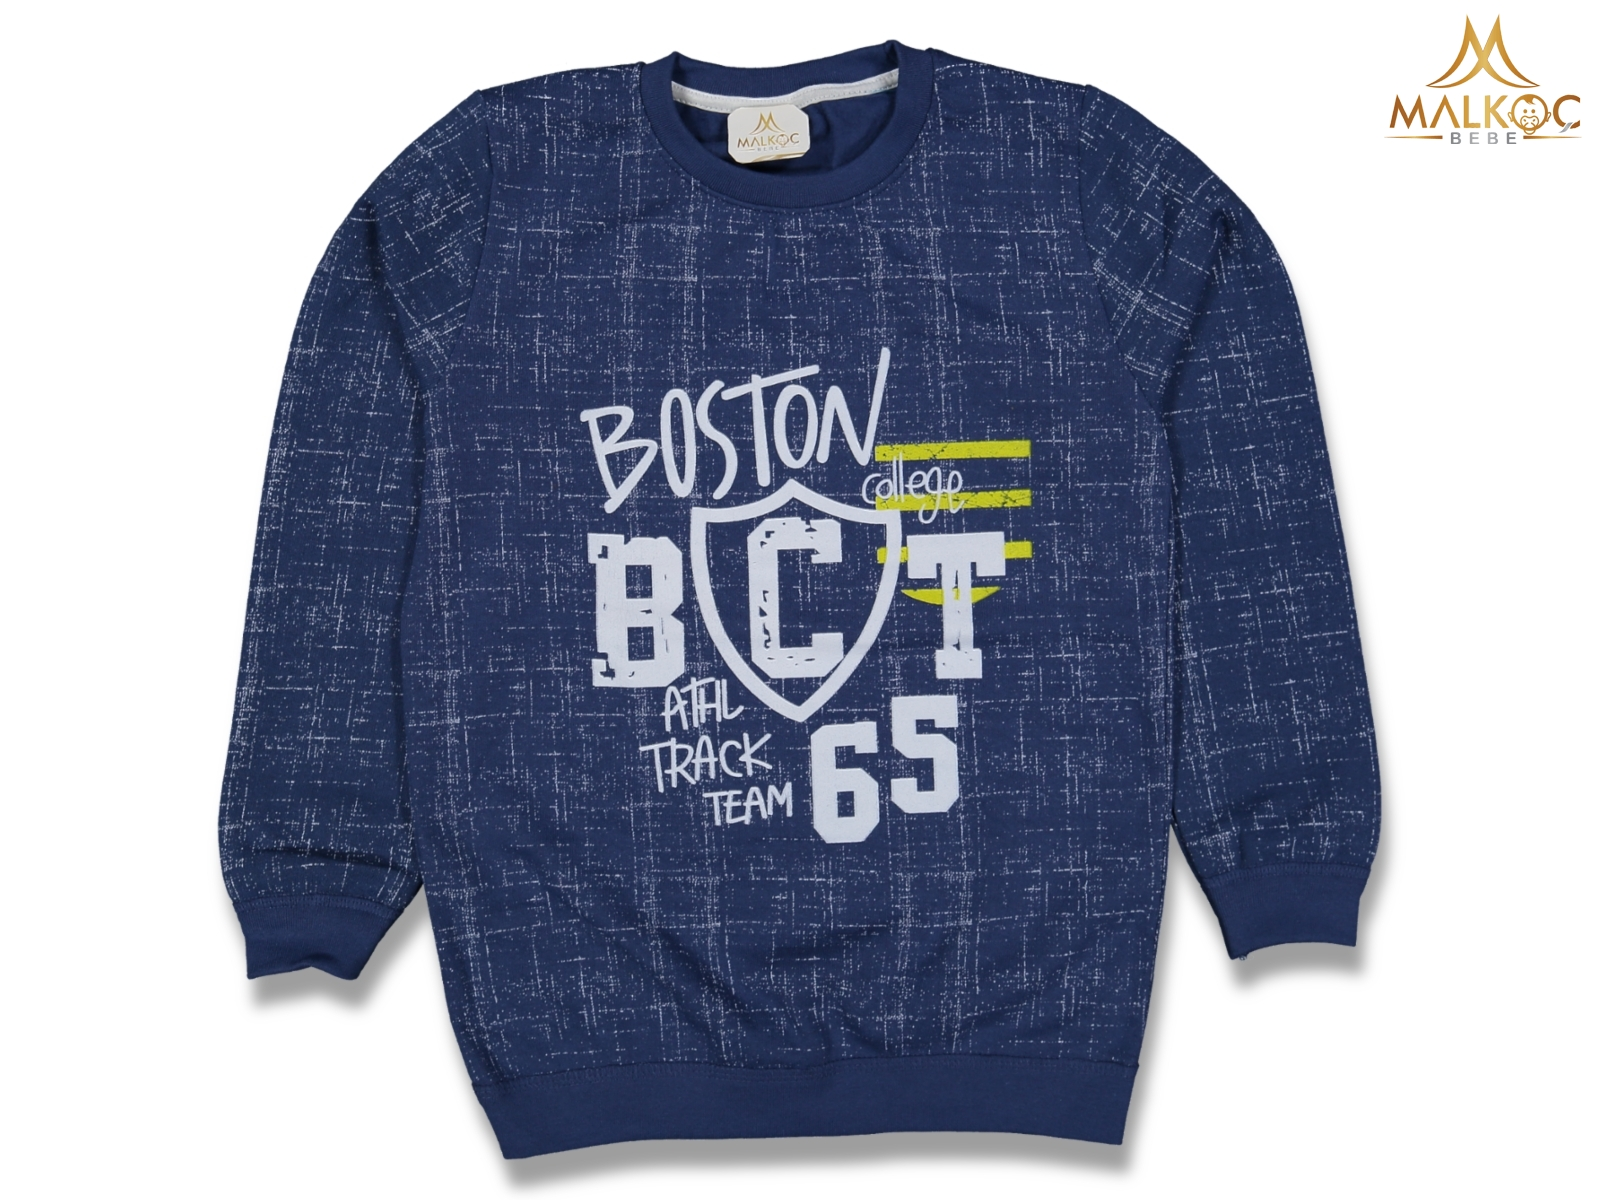 ERKEK 8/12 YAŞ BOSTON COLLEGE SWEAT